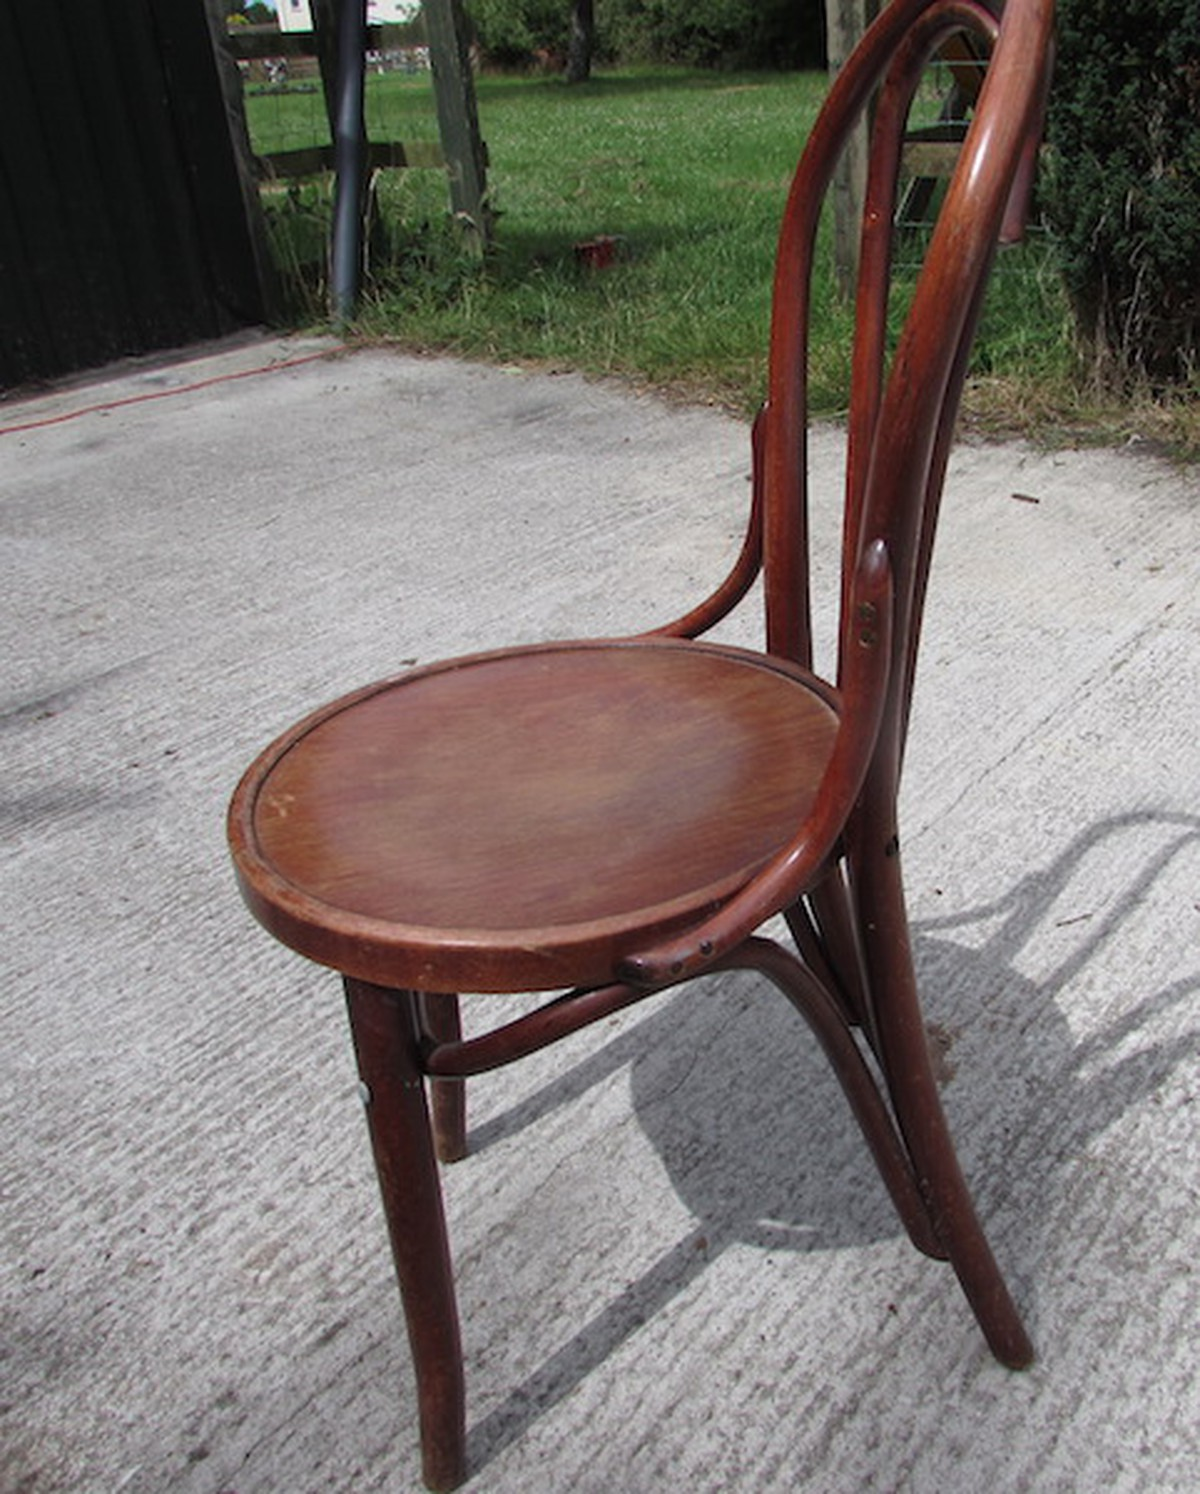 vintage bentwood chairs computer recliner chair secondhand and reclaimed bar pub 60x